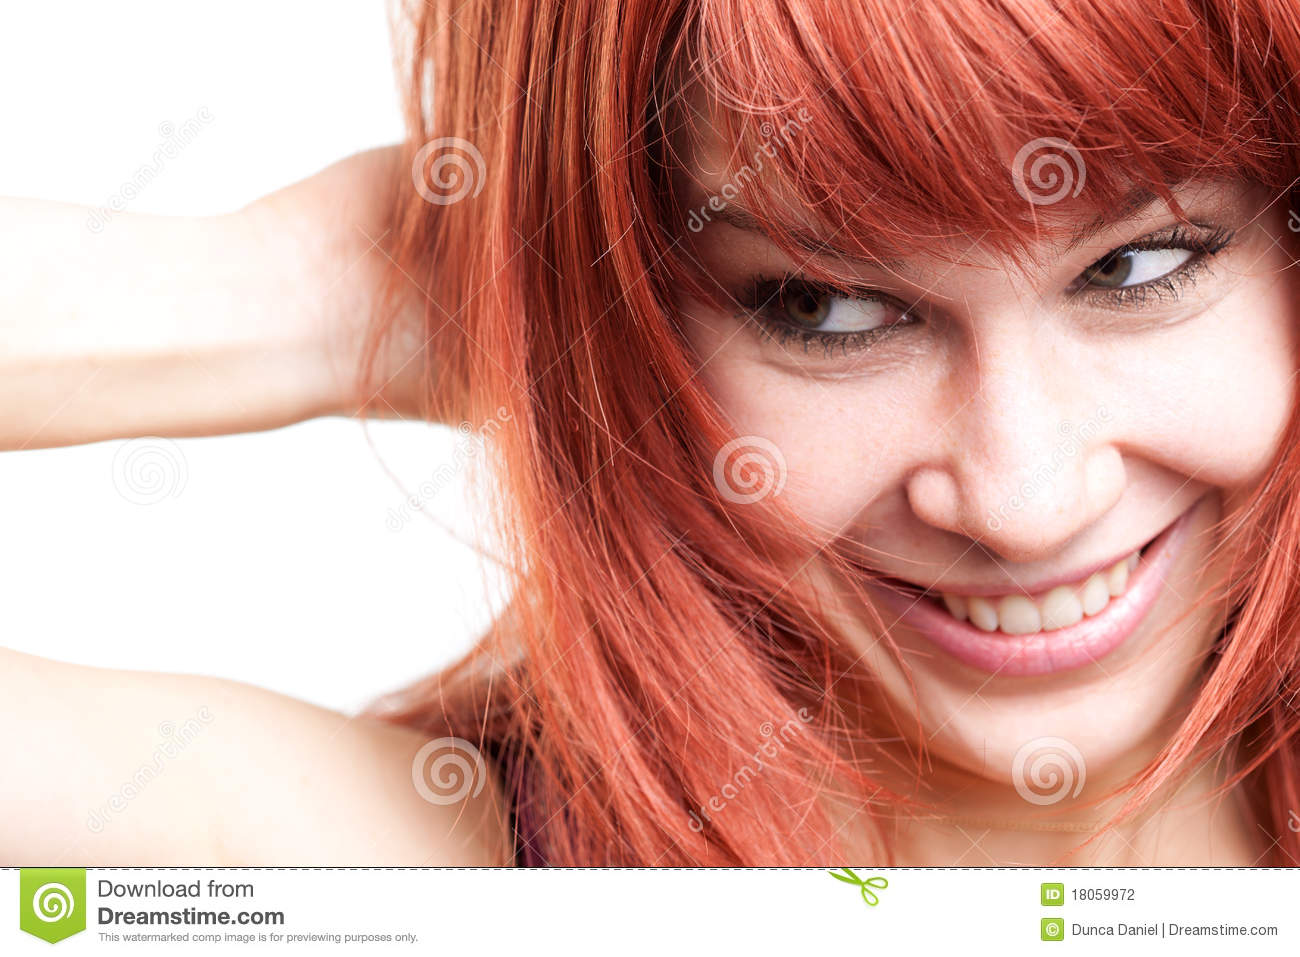 Joyful young woman with cute shy expression